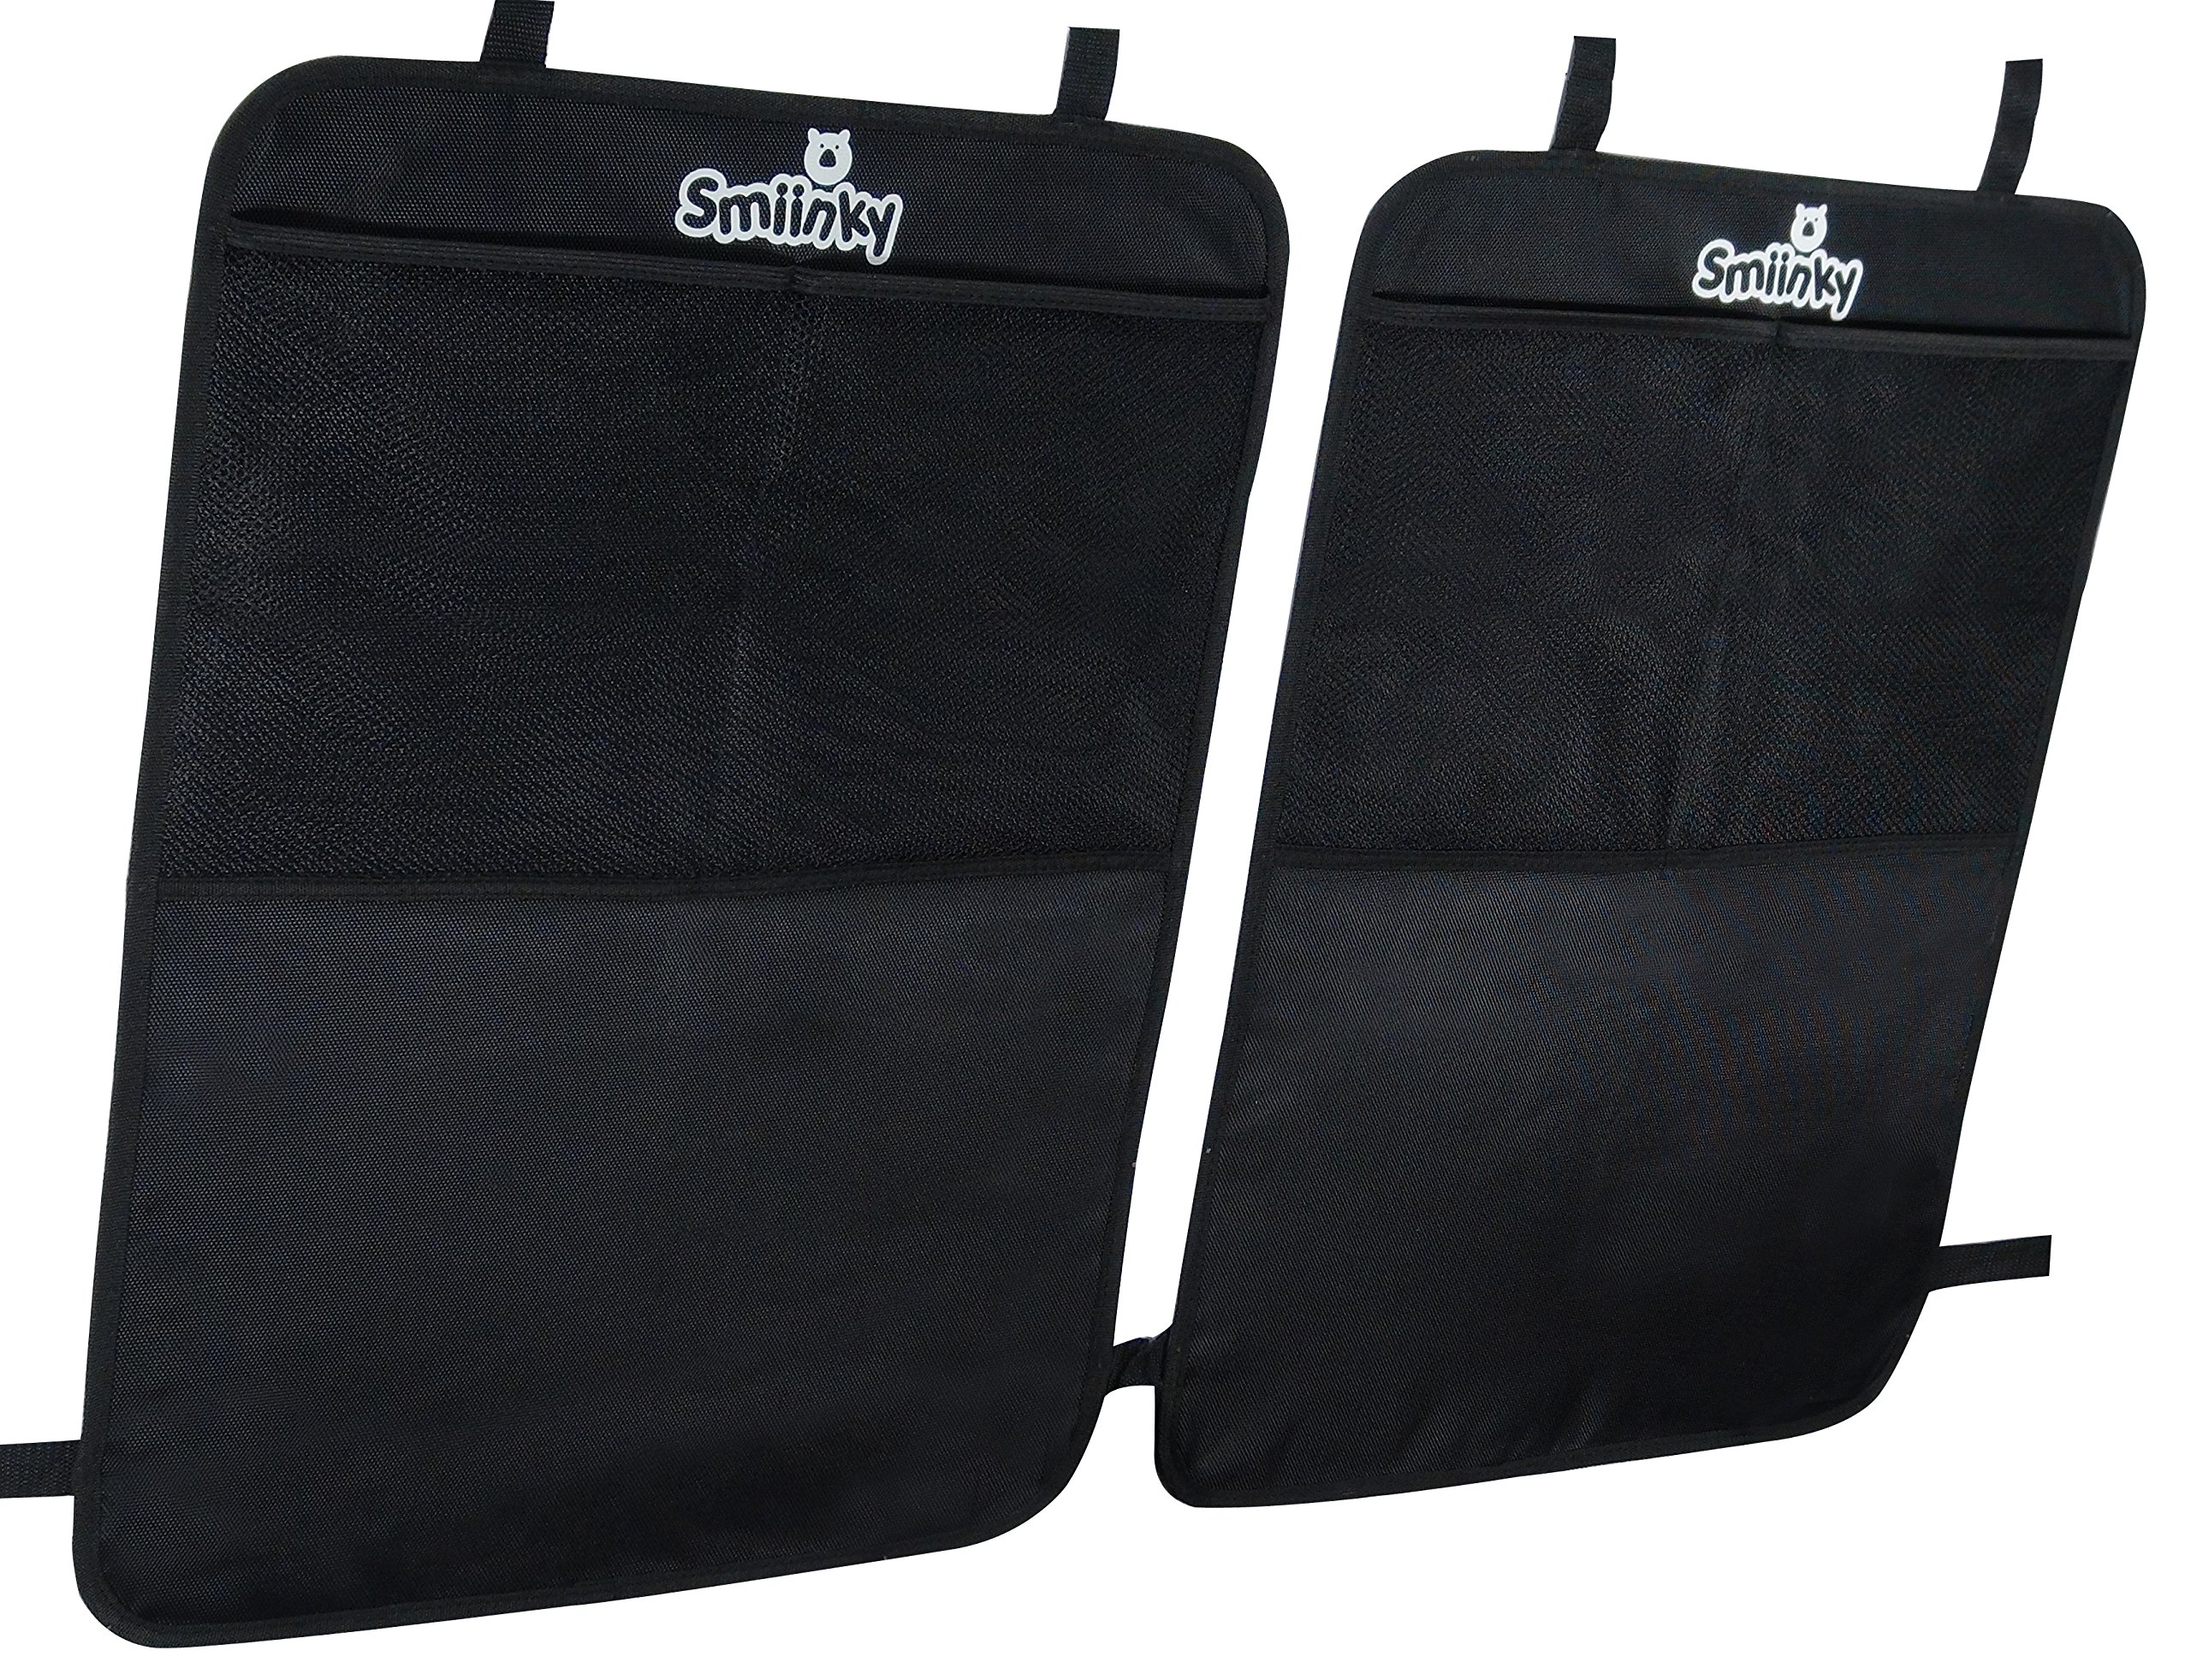 Kick Mats + Extra Large Organizer Pocket - Best Backseat Protector As Seat Covers For Your Car, SUV, Minivan or Truck - Vehicle Back Seats & Kids Safety Accessories - Universal Automotive Protectors by Smiinky